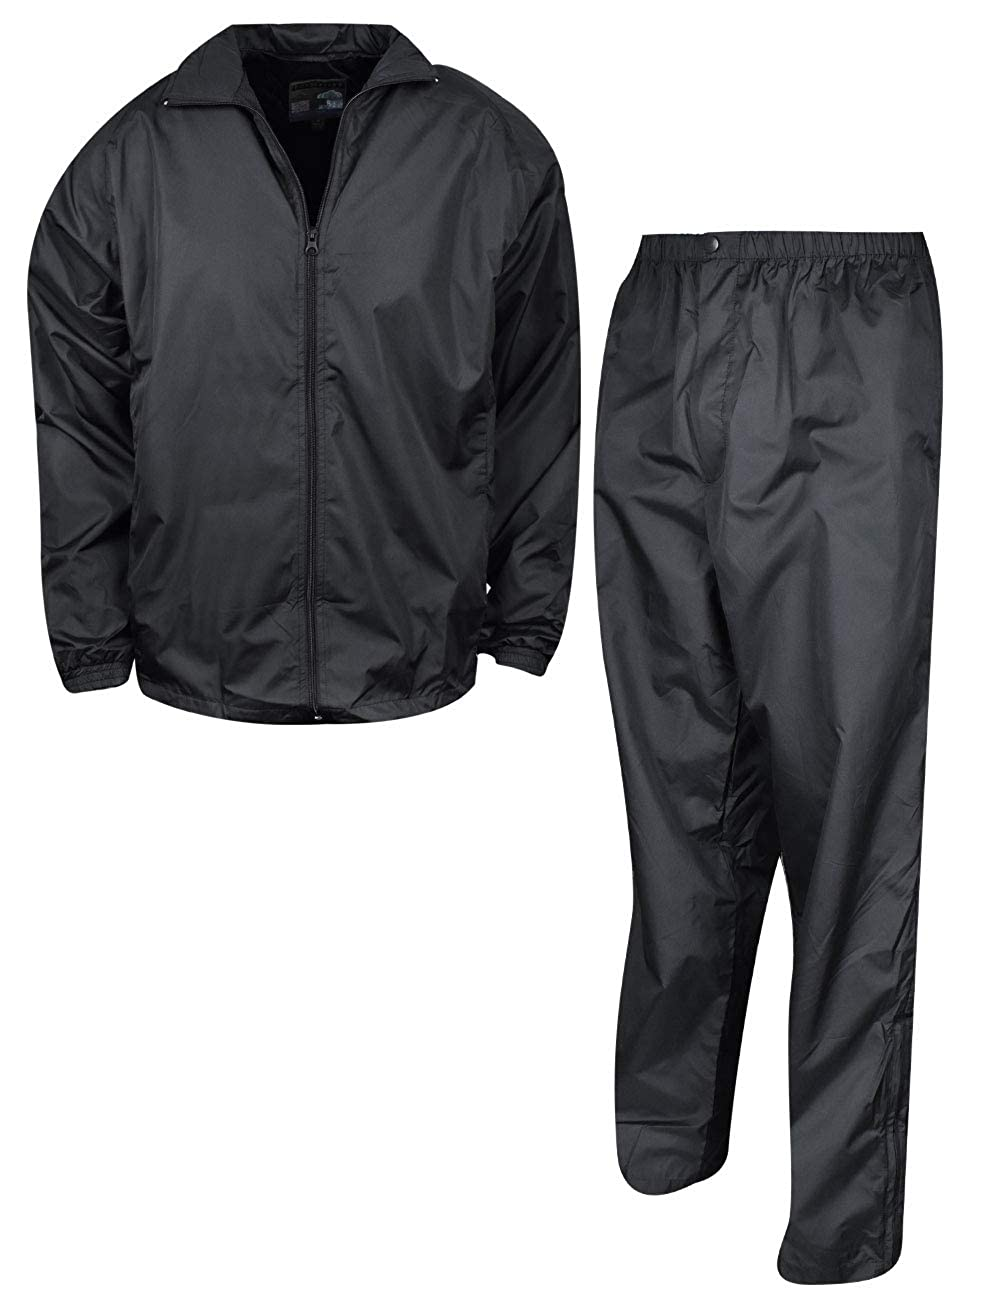 052da9e91 Forrester's Men's Packable Rain Set